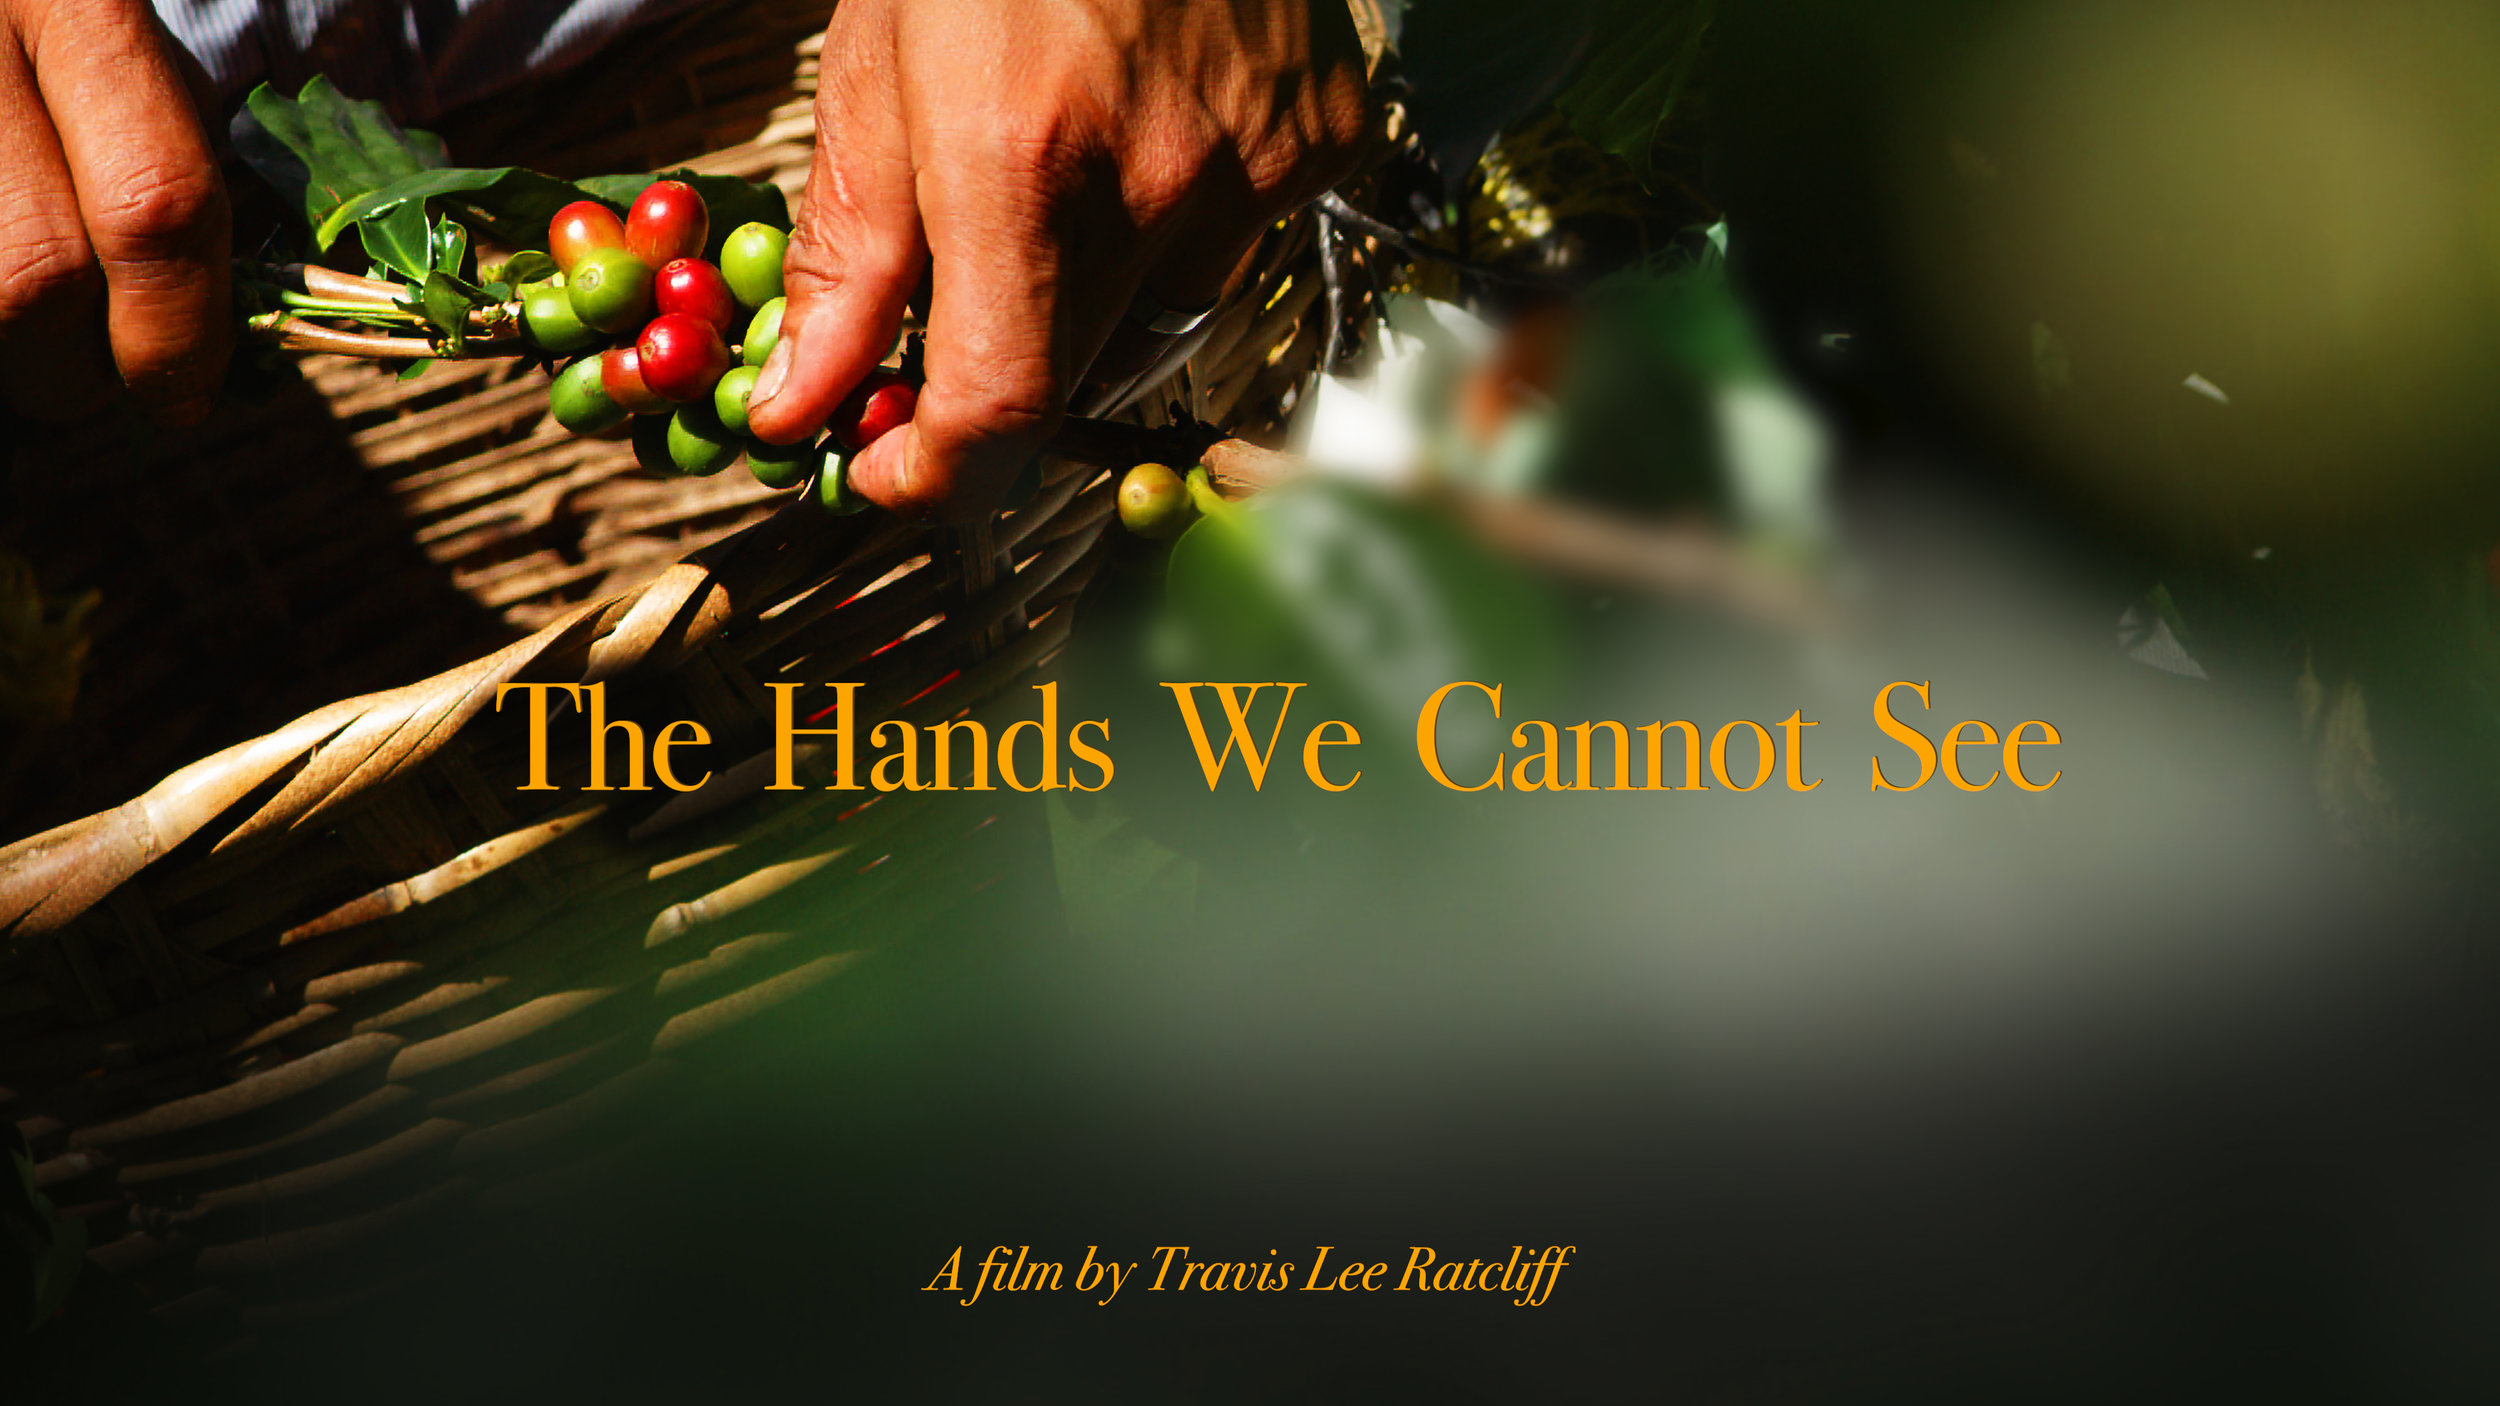 The Hands We Cannot See